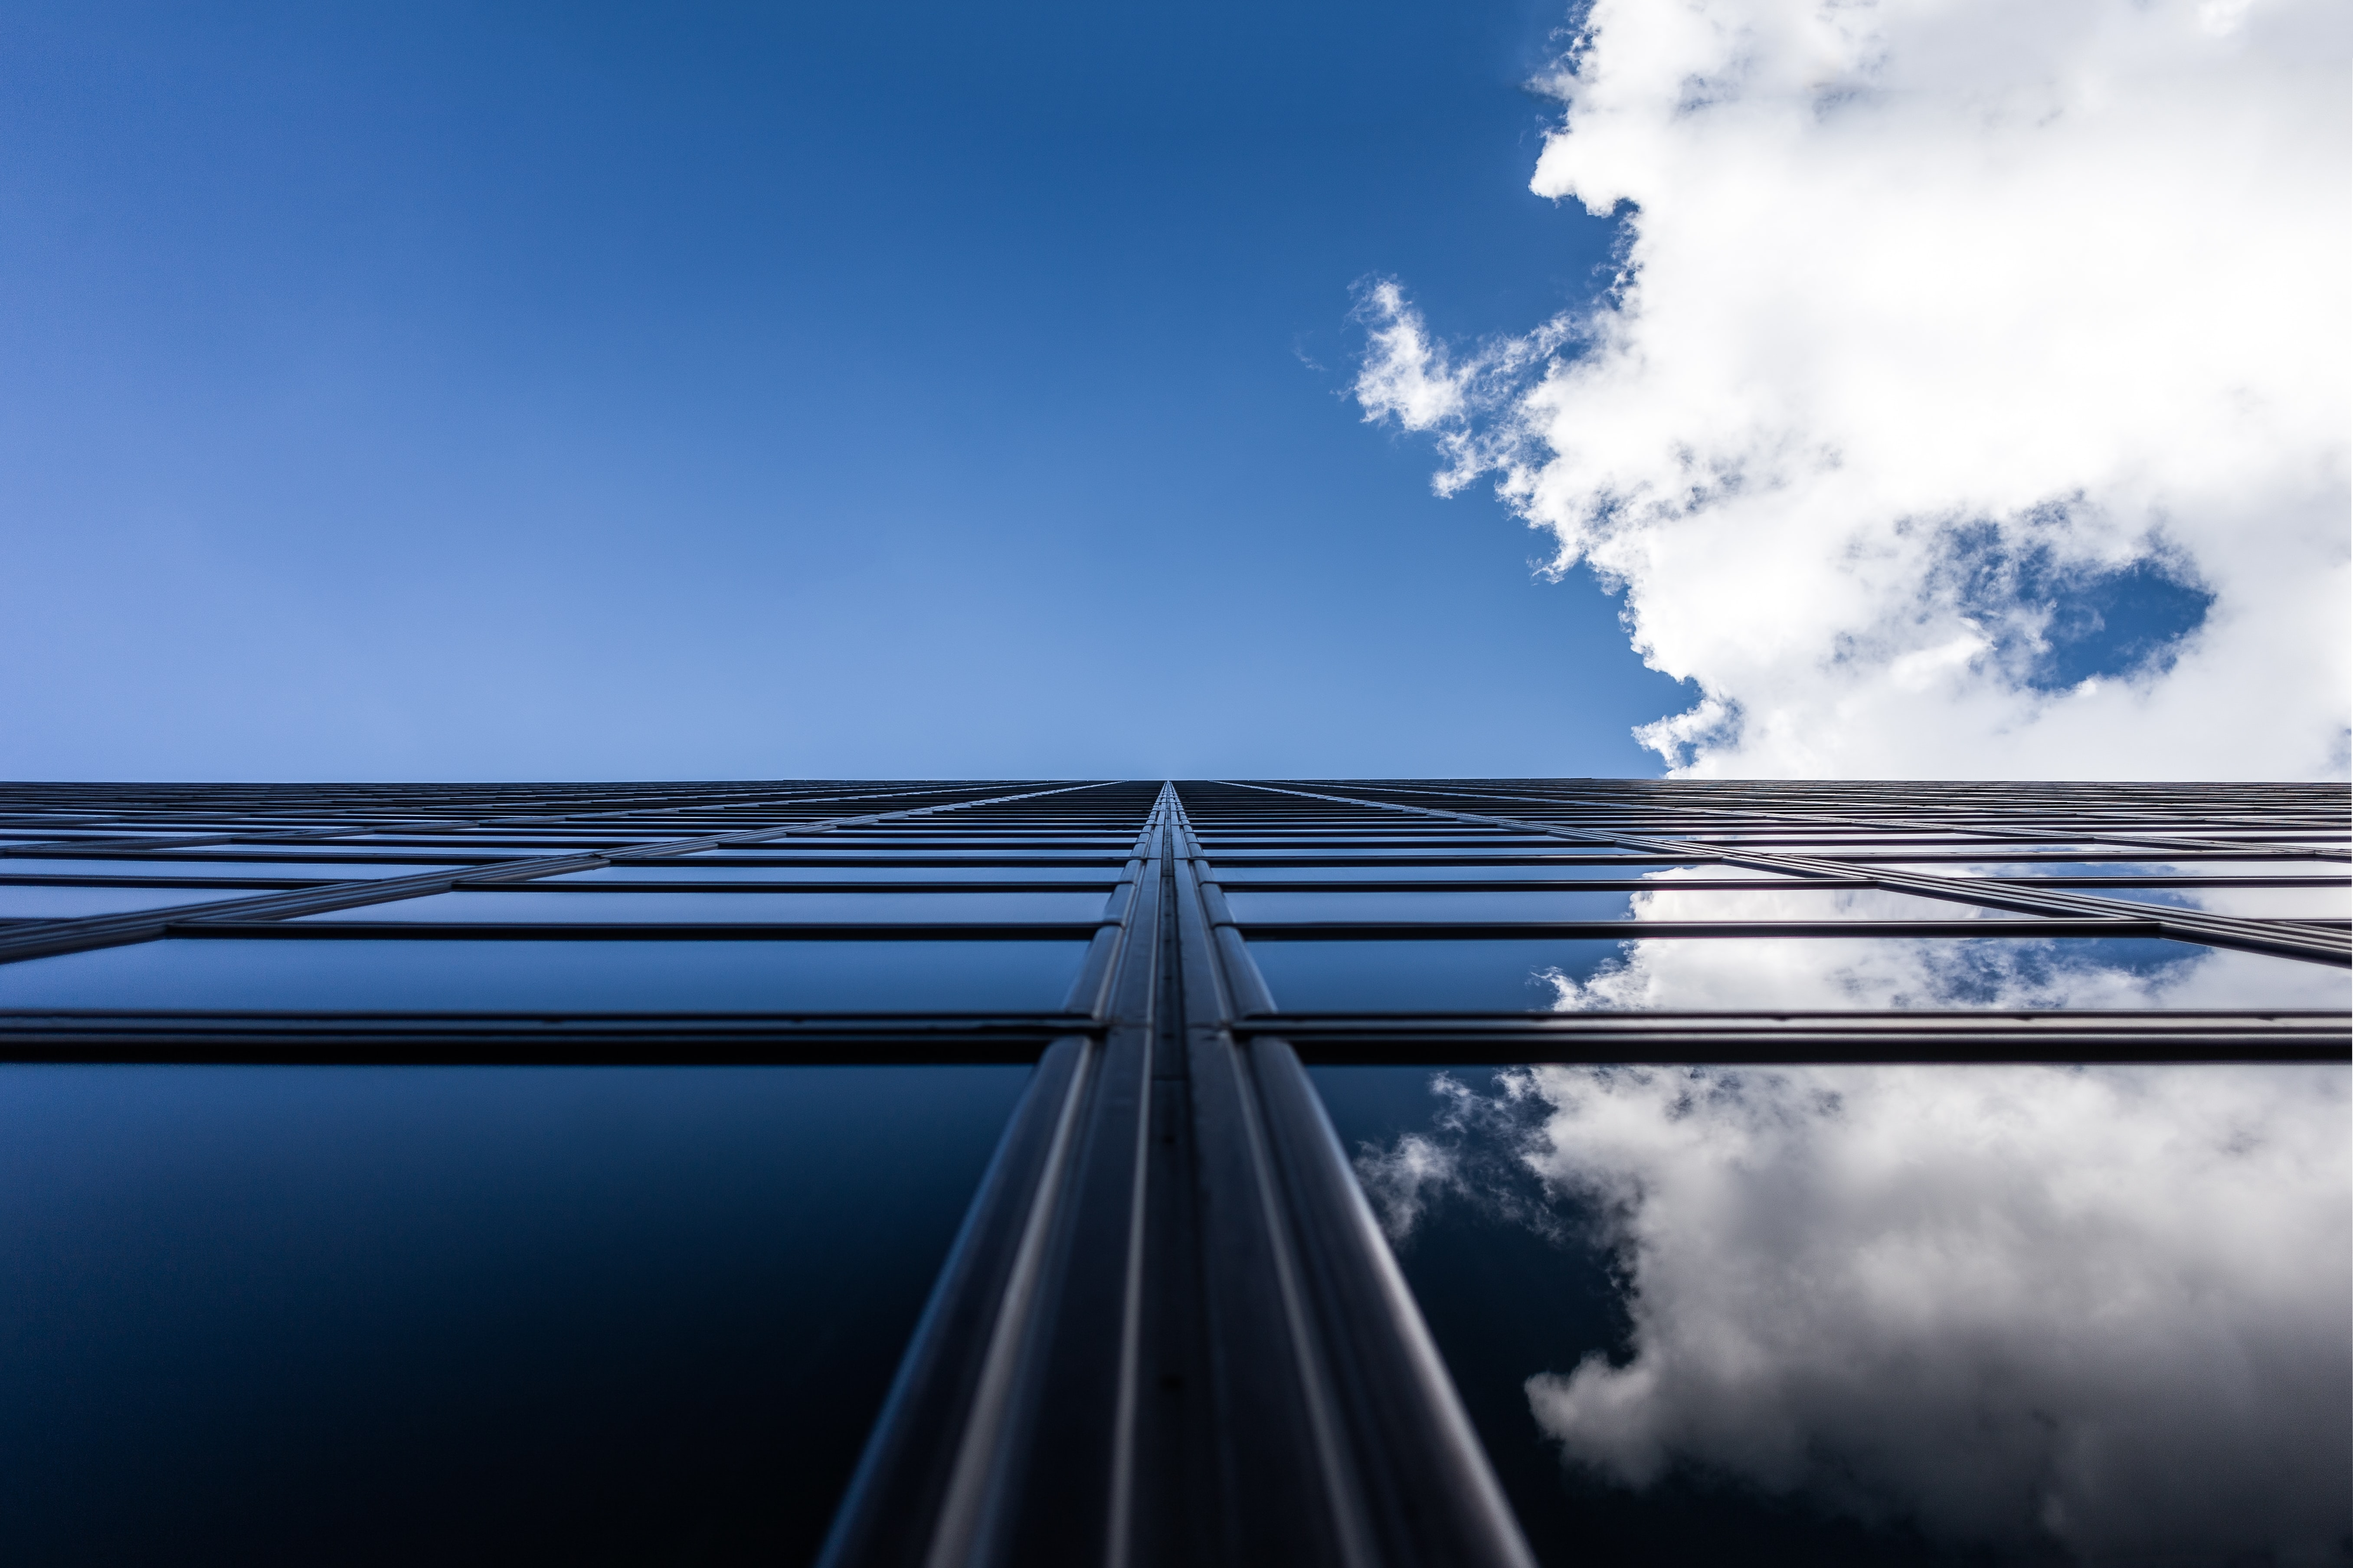 Clouds and blue sky reflected in windows of a modern building